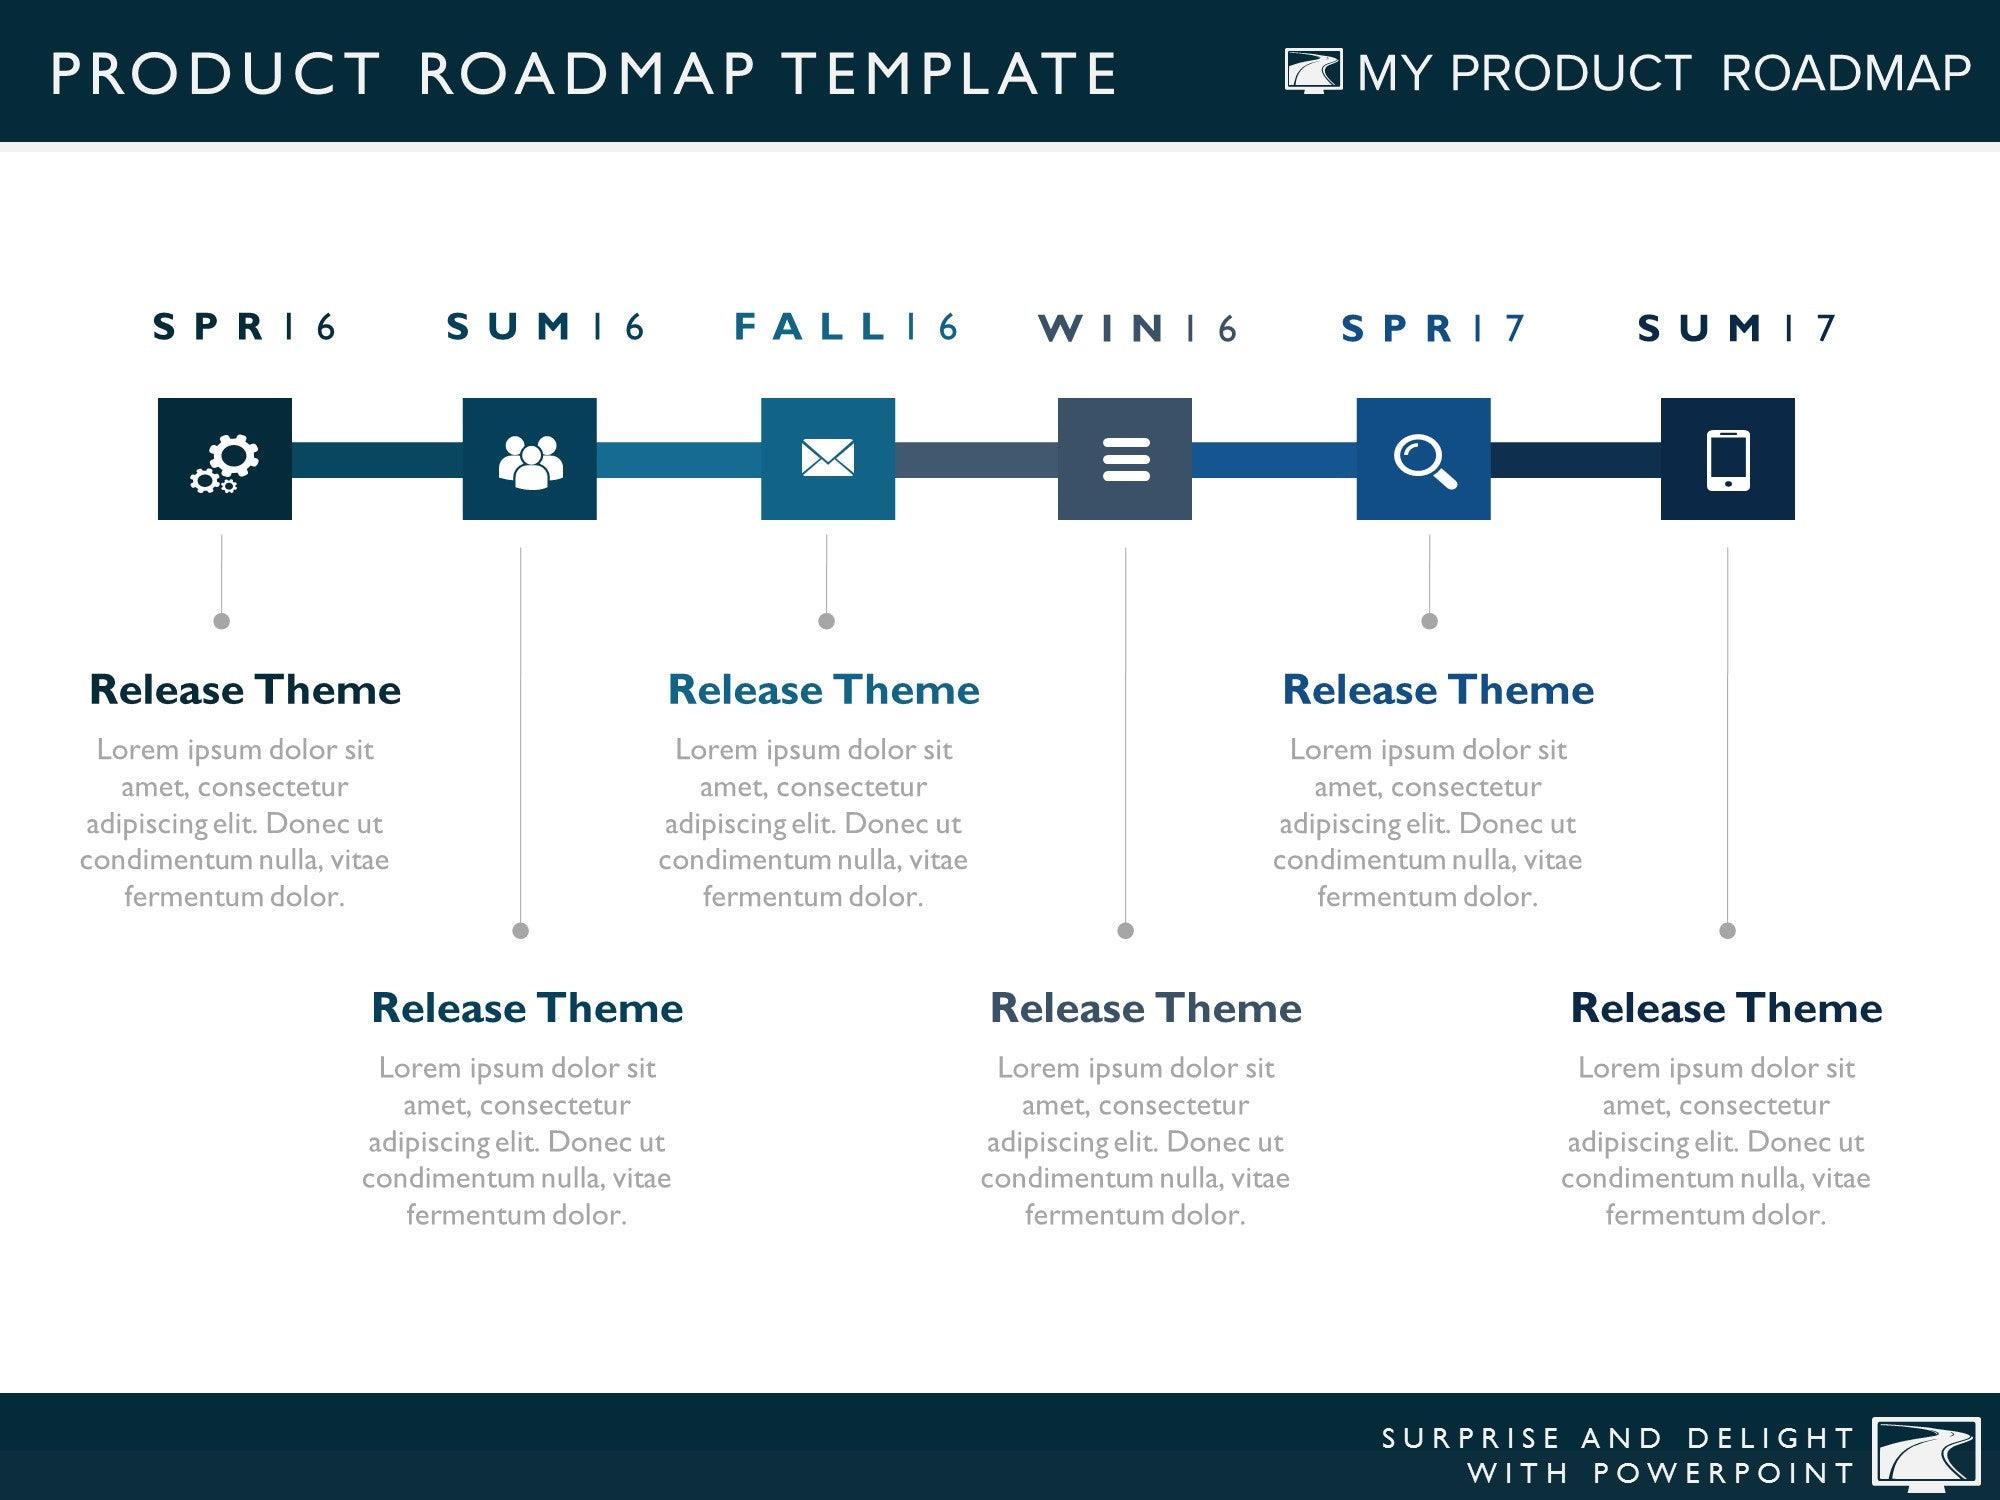 Product roadmap templates for powerpoint for Software development timeline template